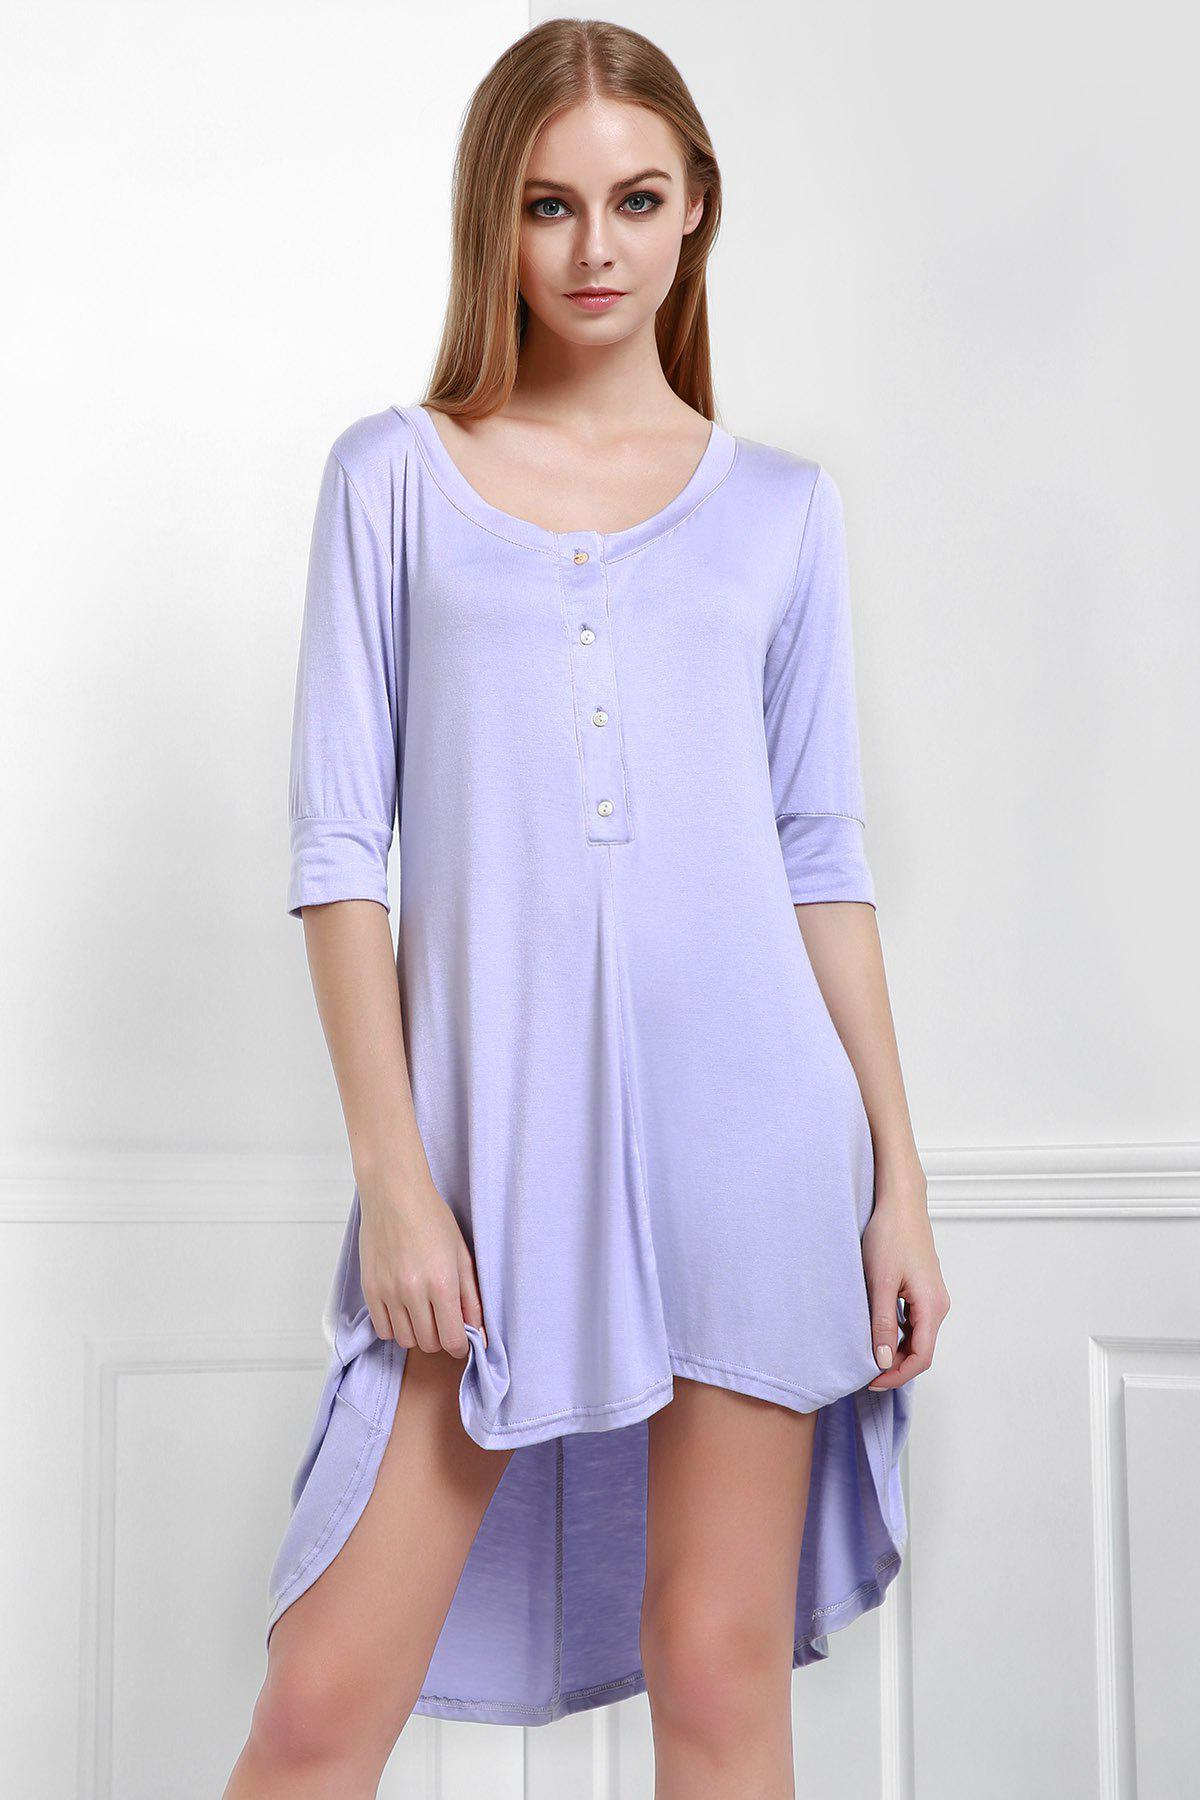 Buy Scoop Neck Buttoned Tee Flowy Dress With Sleeves